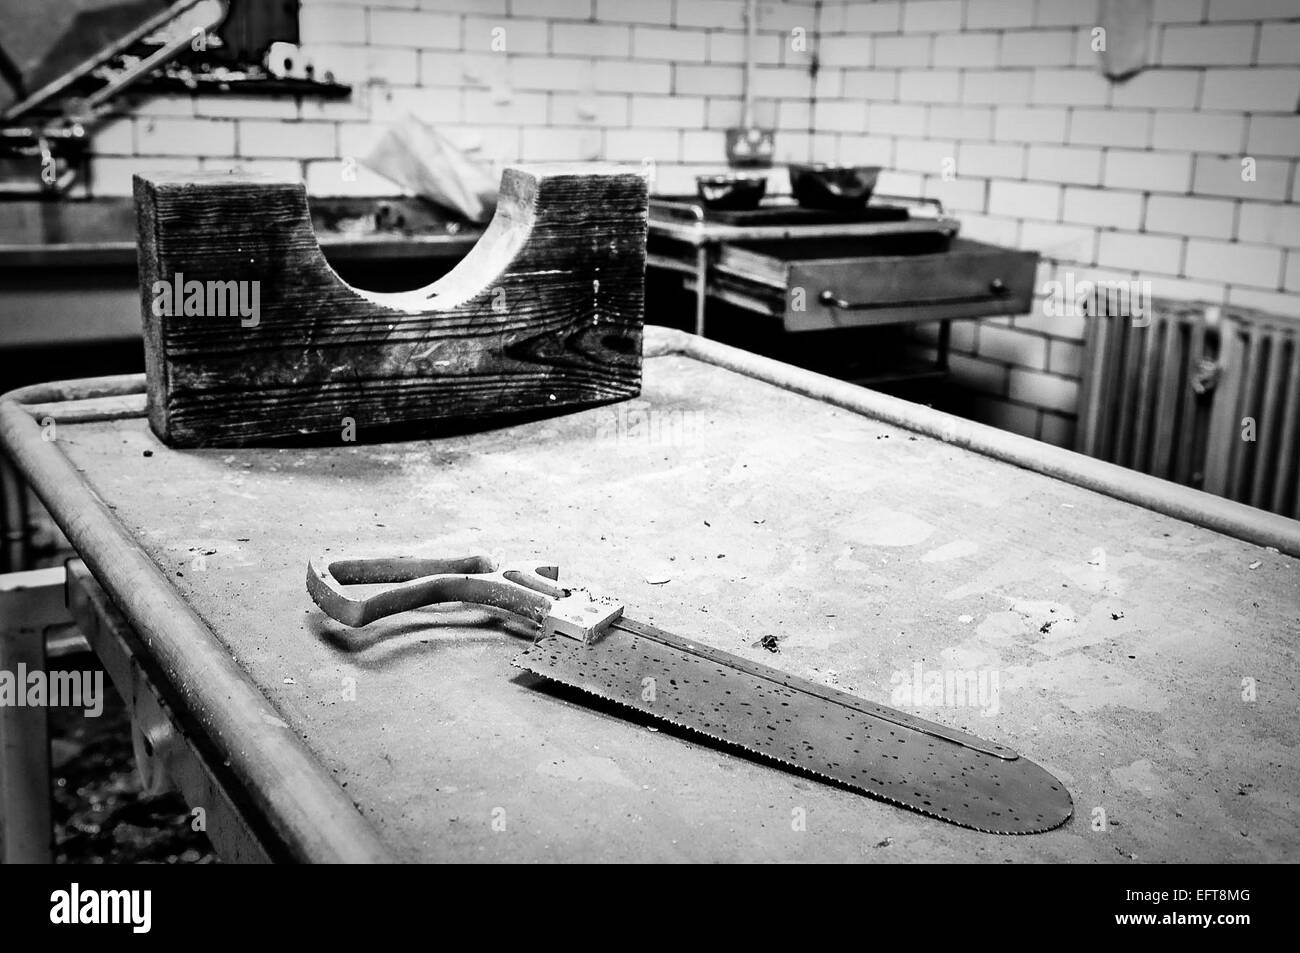 Mortician's saw and wooden neck brace on a preparation table. - Stock Image